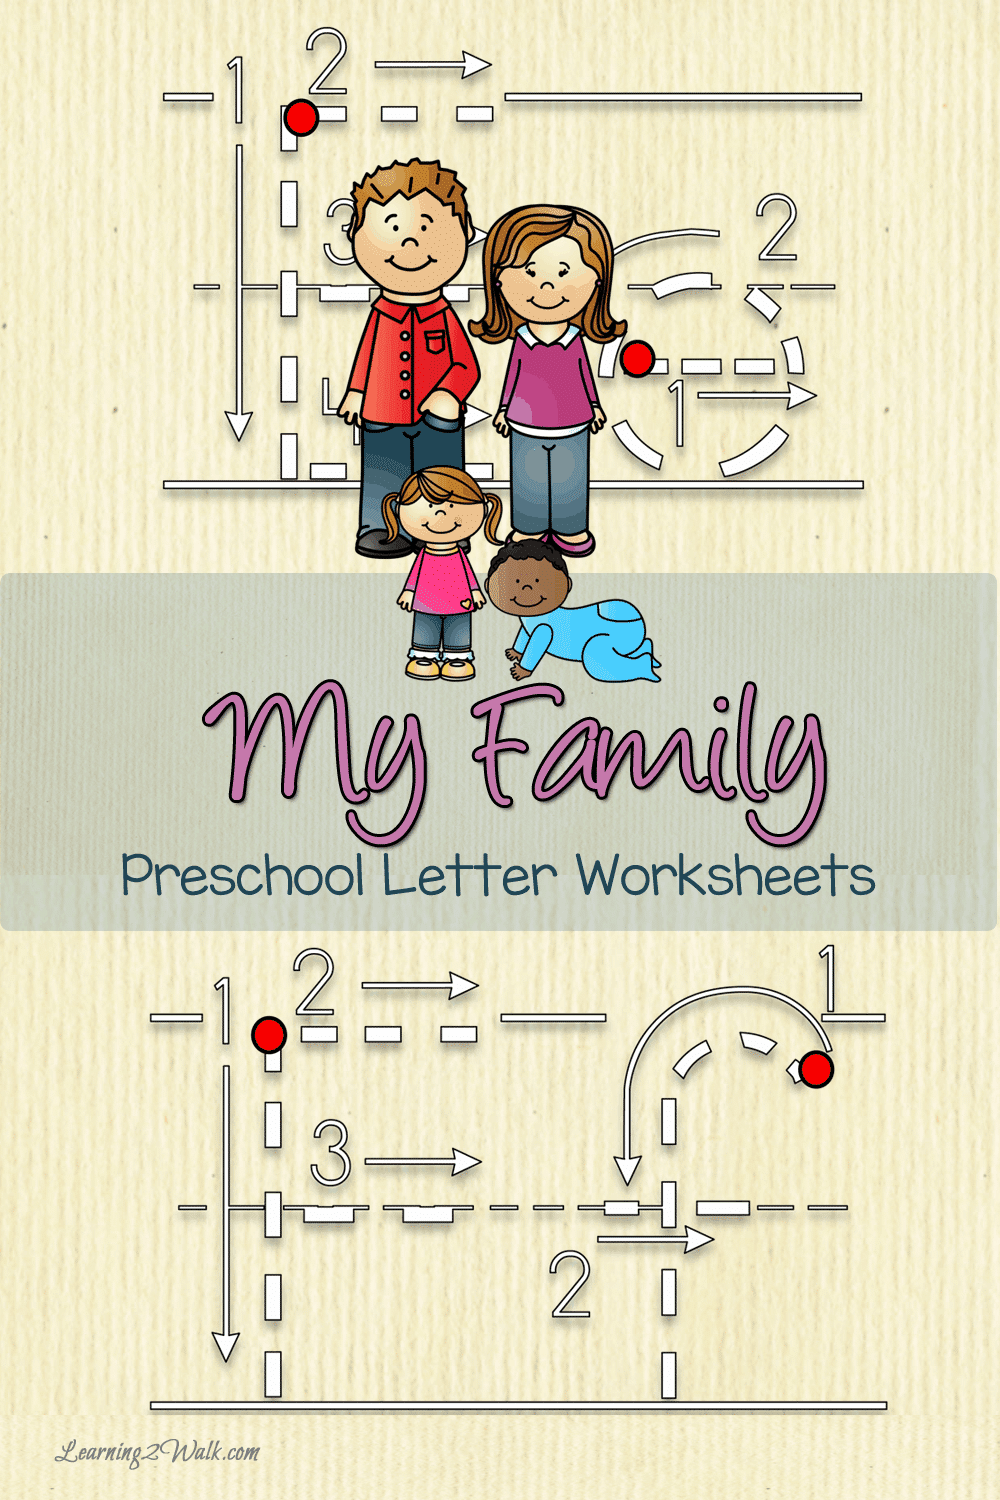 Do you have a preschooler and searching for a few preschool letter worksheets to work on writing the alphabet? Use these in your writing activities.